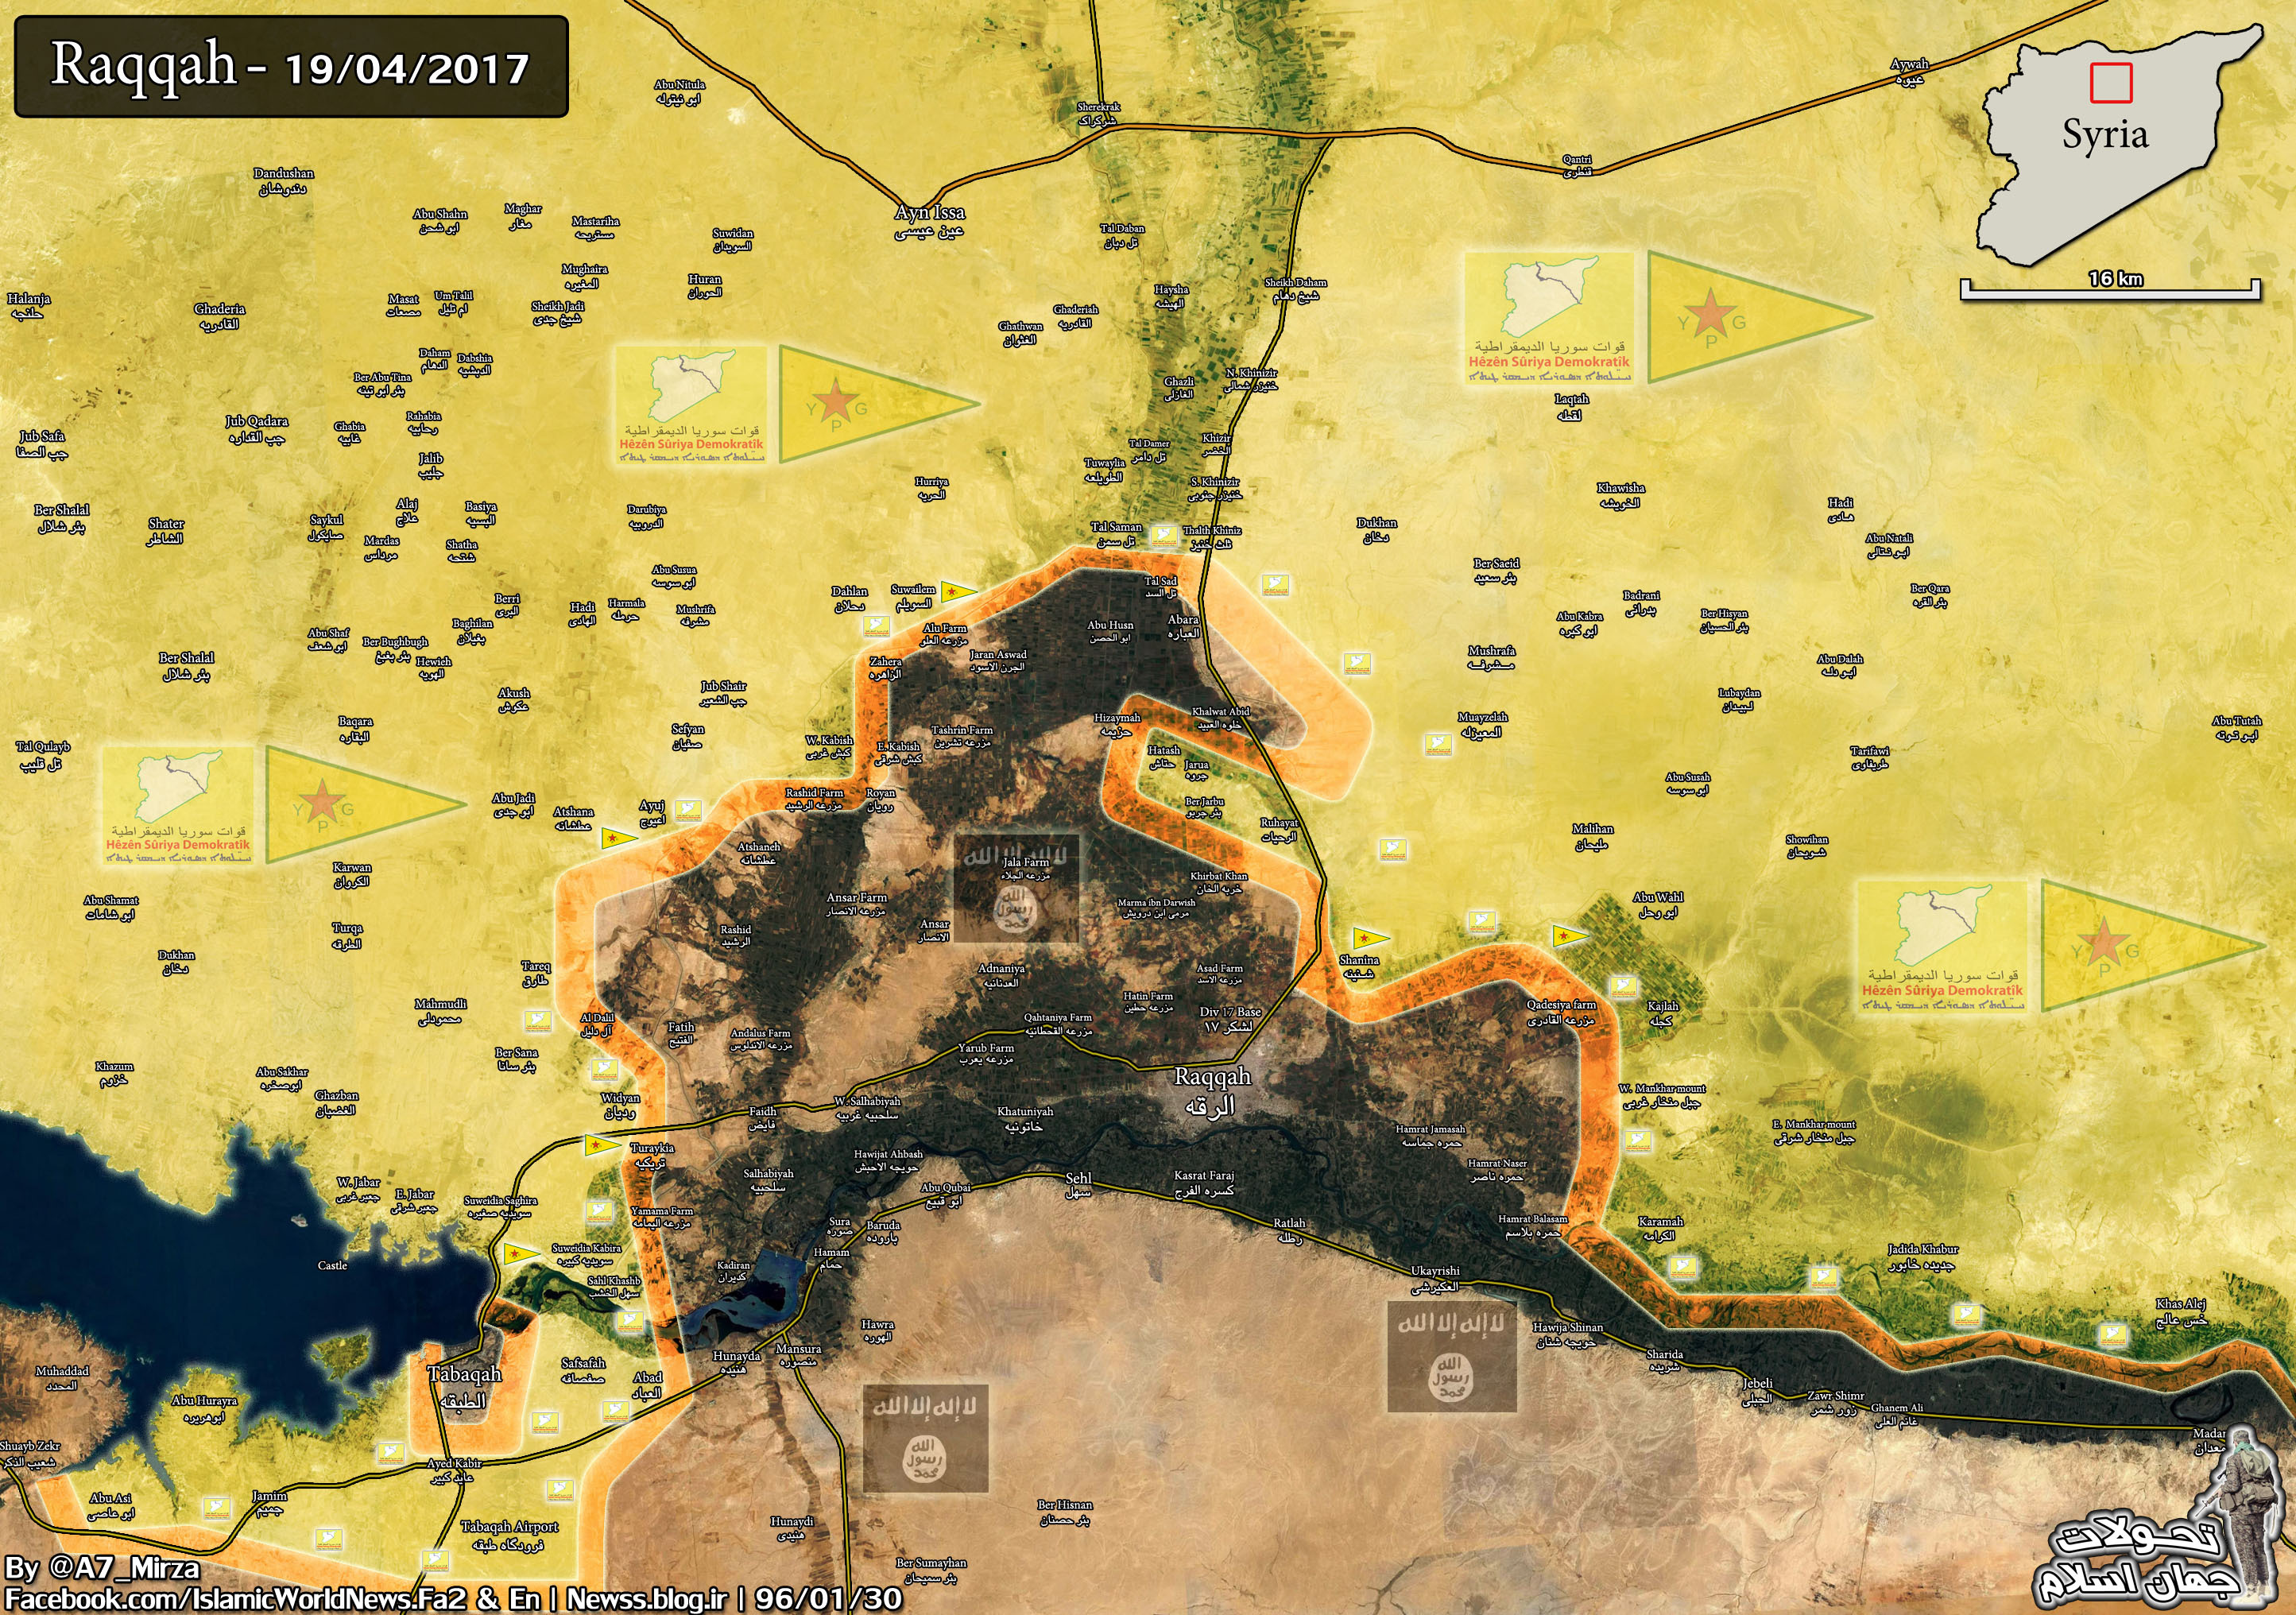 Map Update: Military Situation In Area Of Raqqah, SDF Advancing North Of ISIS Stronghold